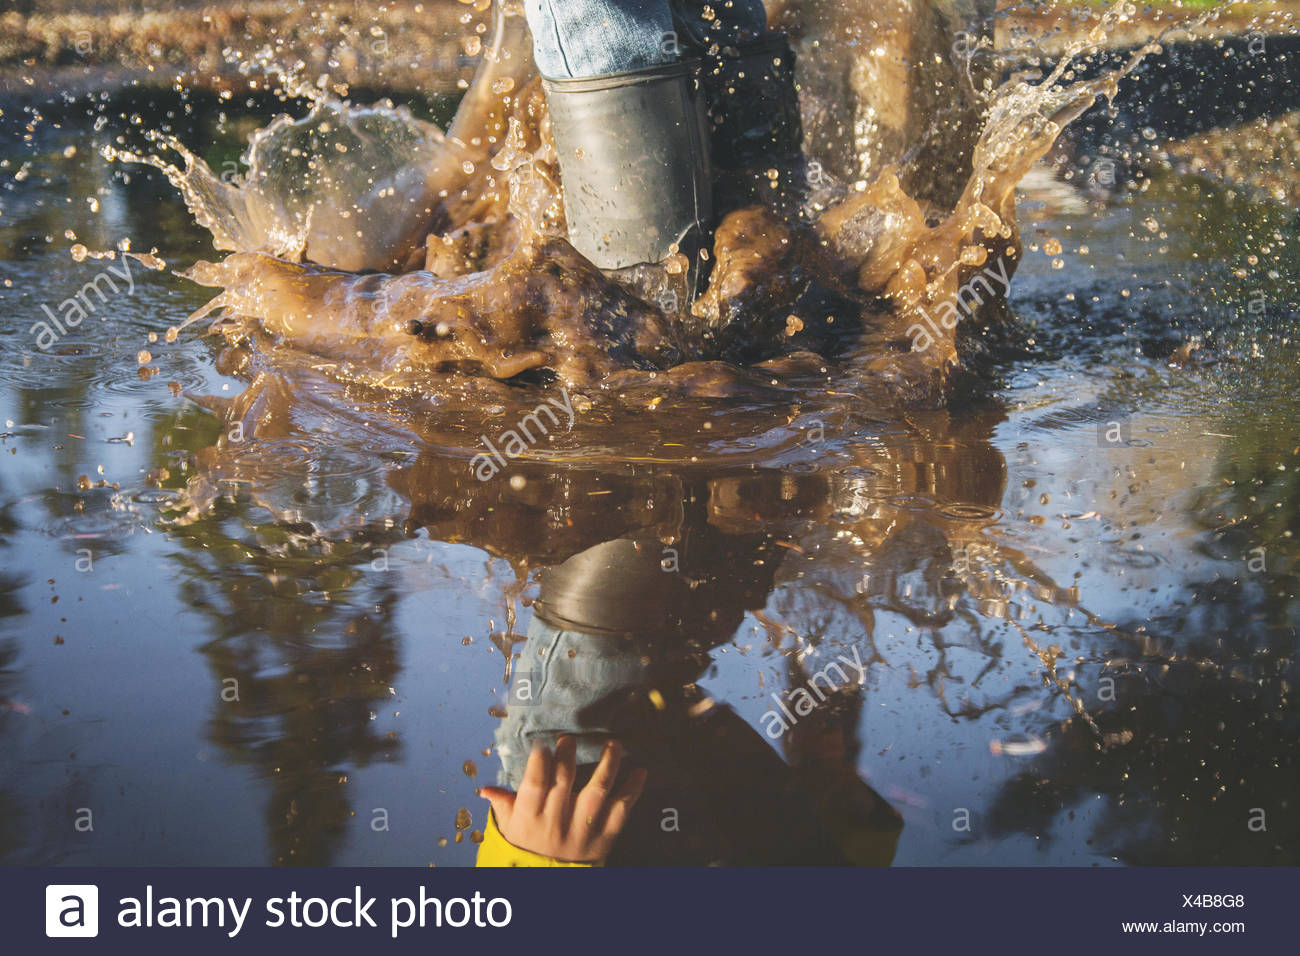 Close-up of child's legs splashing in a puddle of water Stock Photo